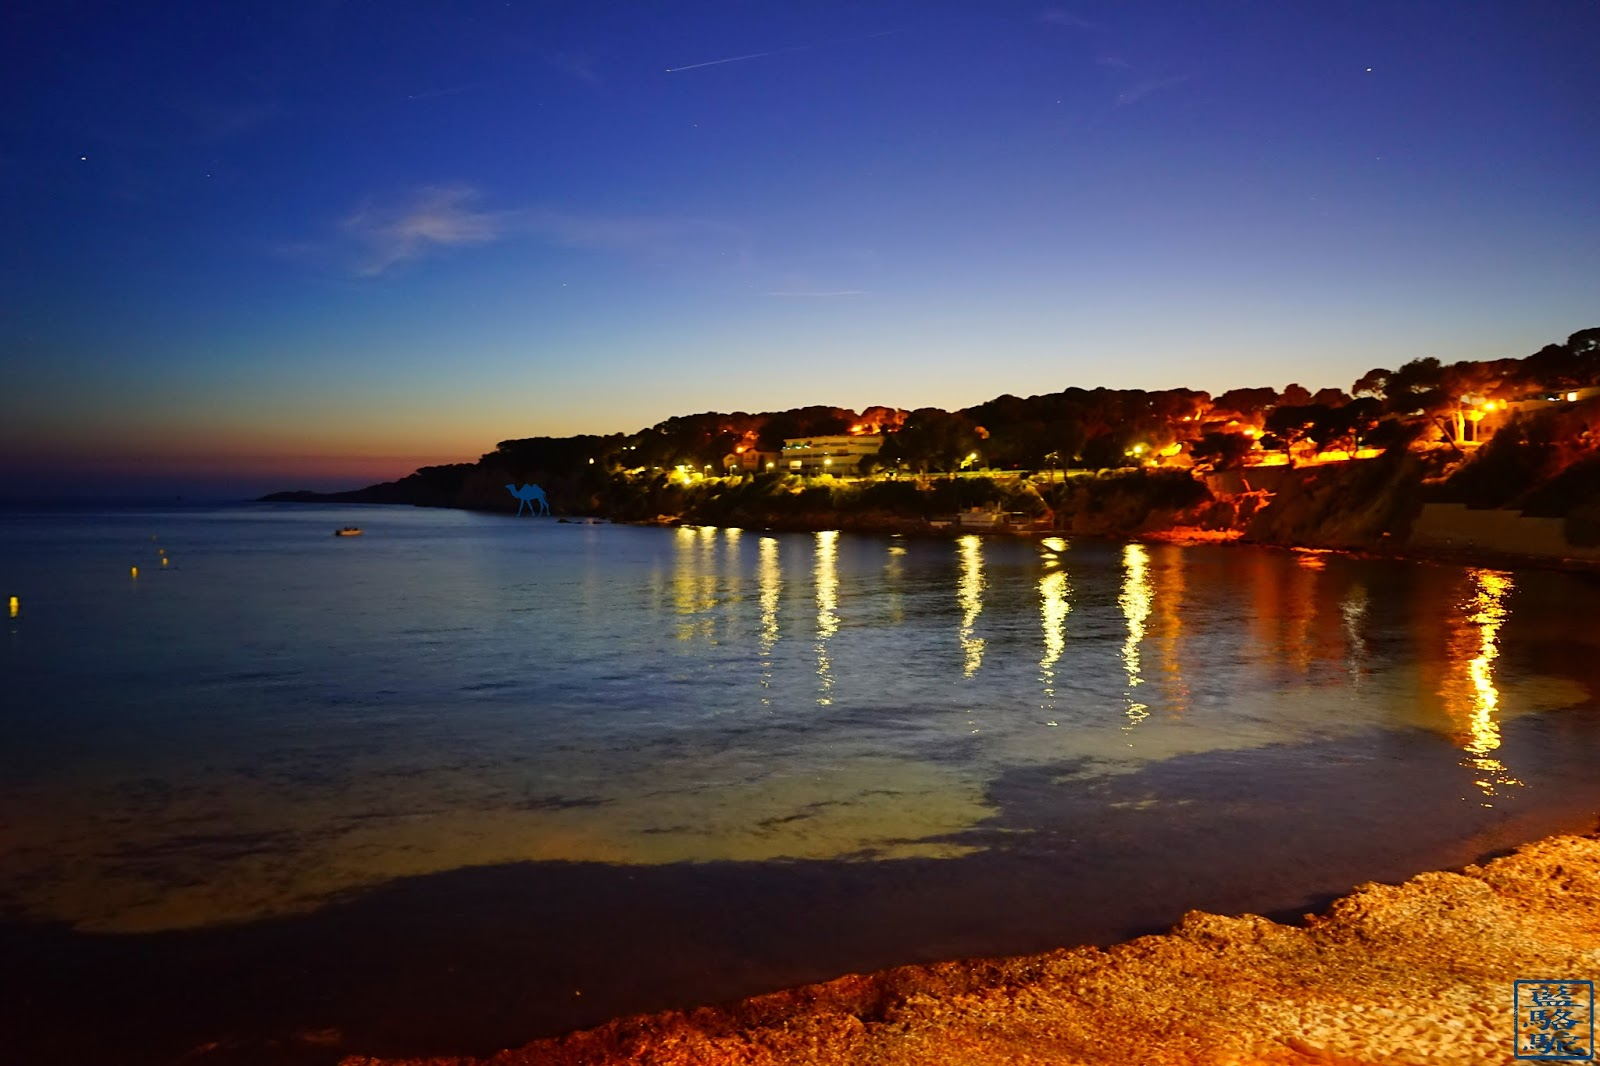 Le Chameau Bleu - Plage de portissol by night